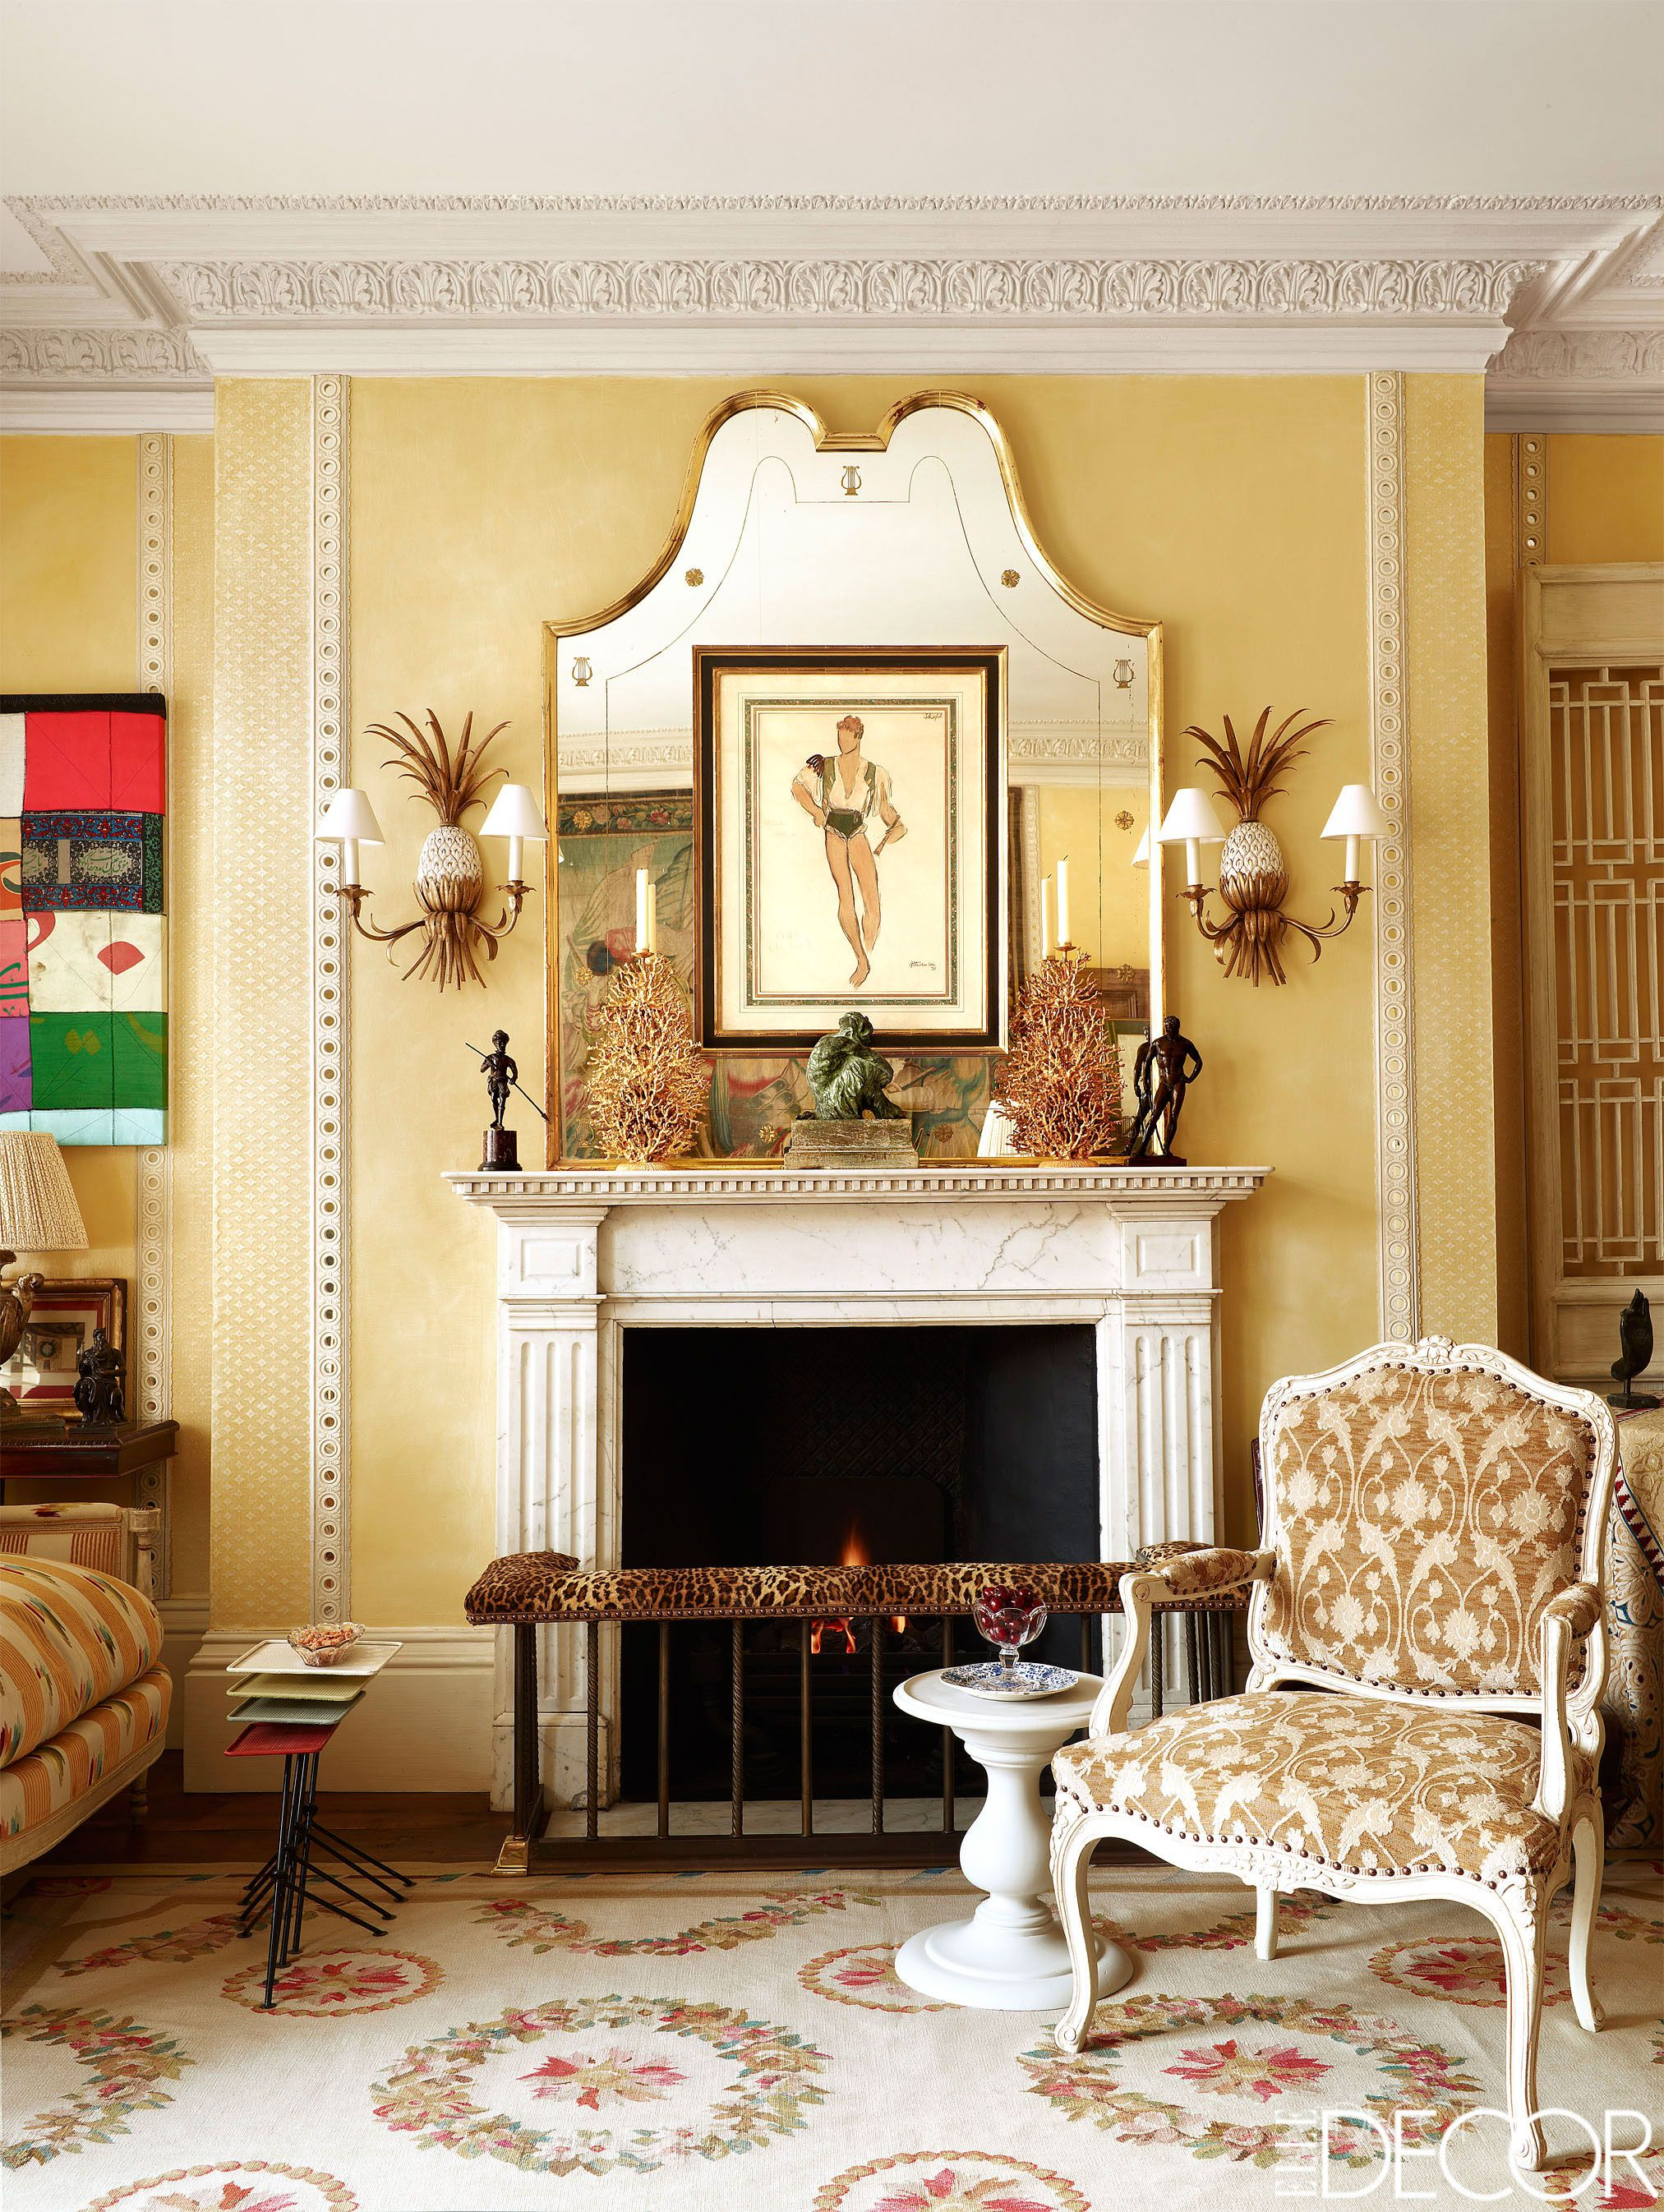 Funky How To Decorate Fireplace Wall Collection - The Wall Art ...